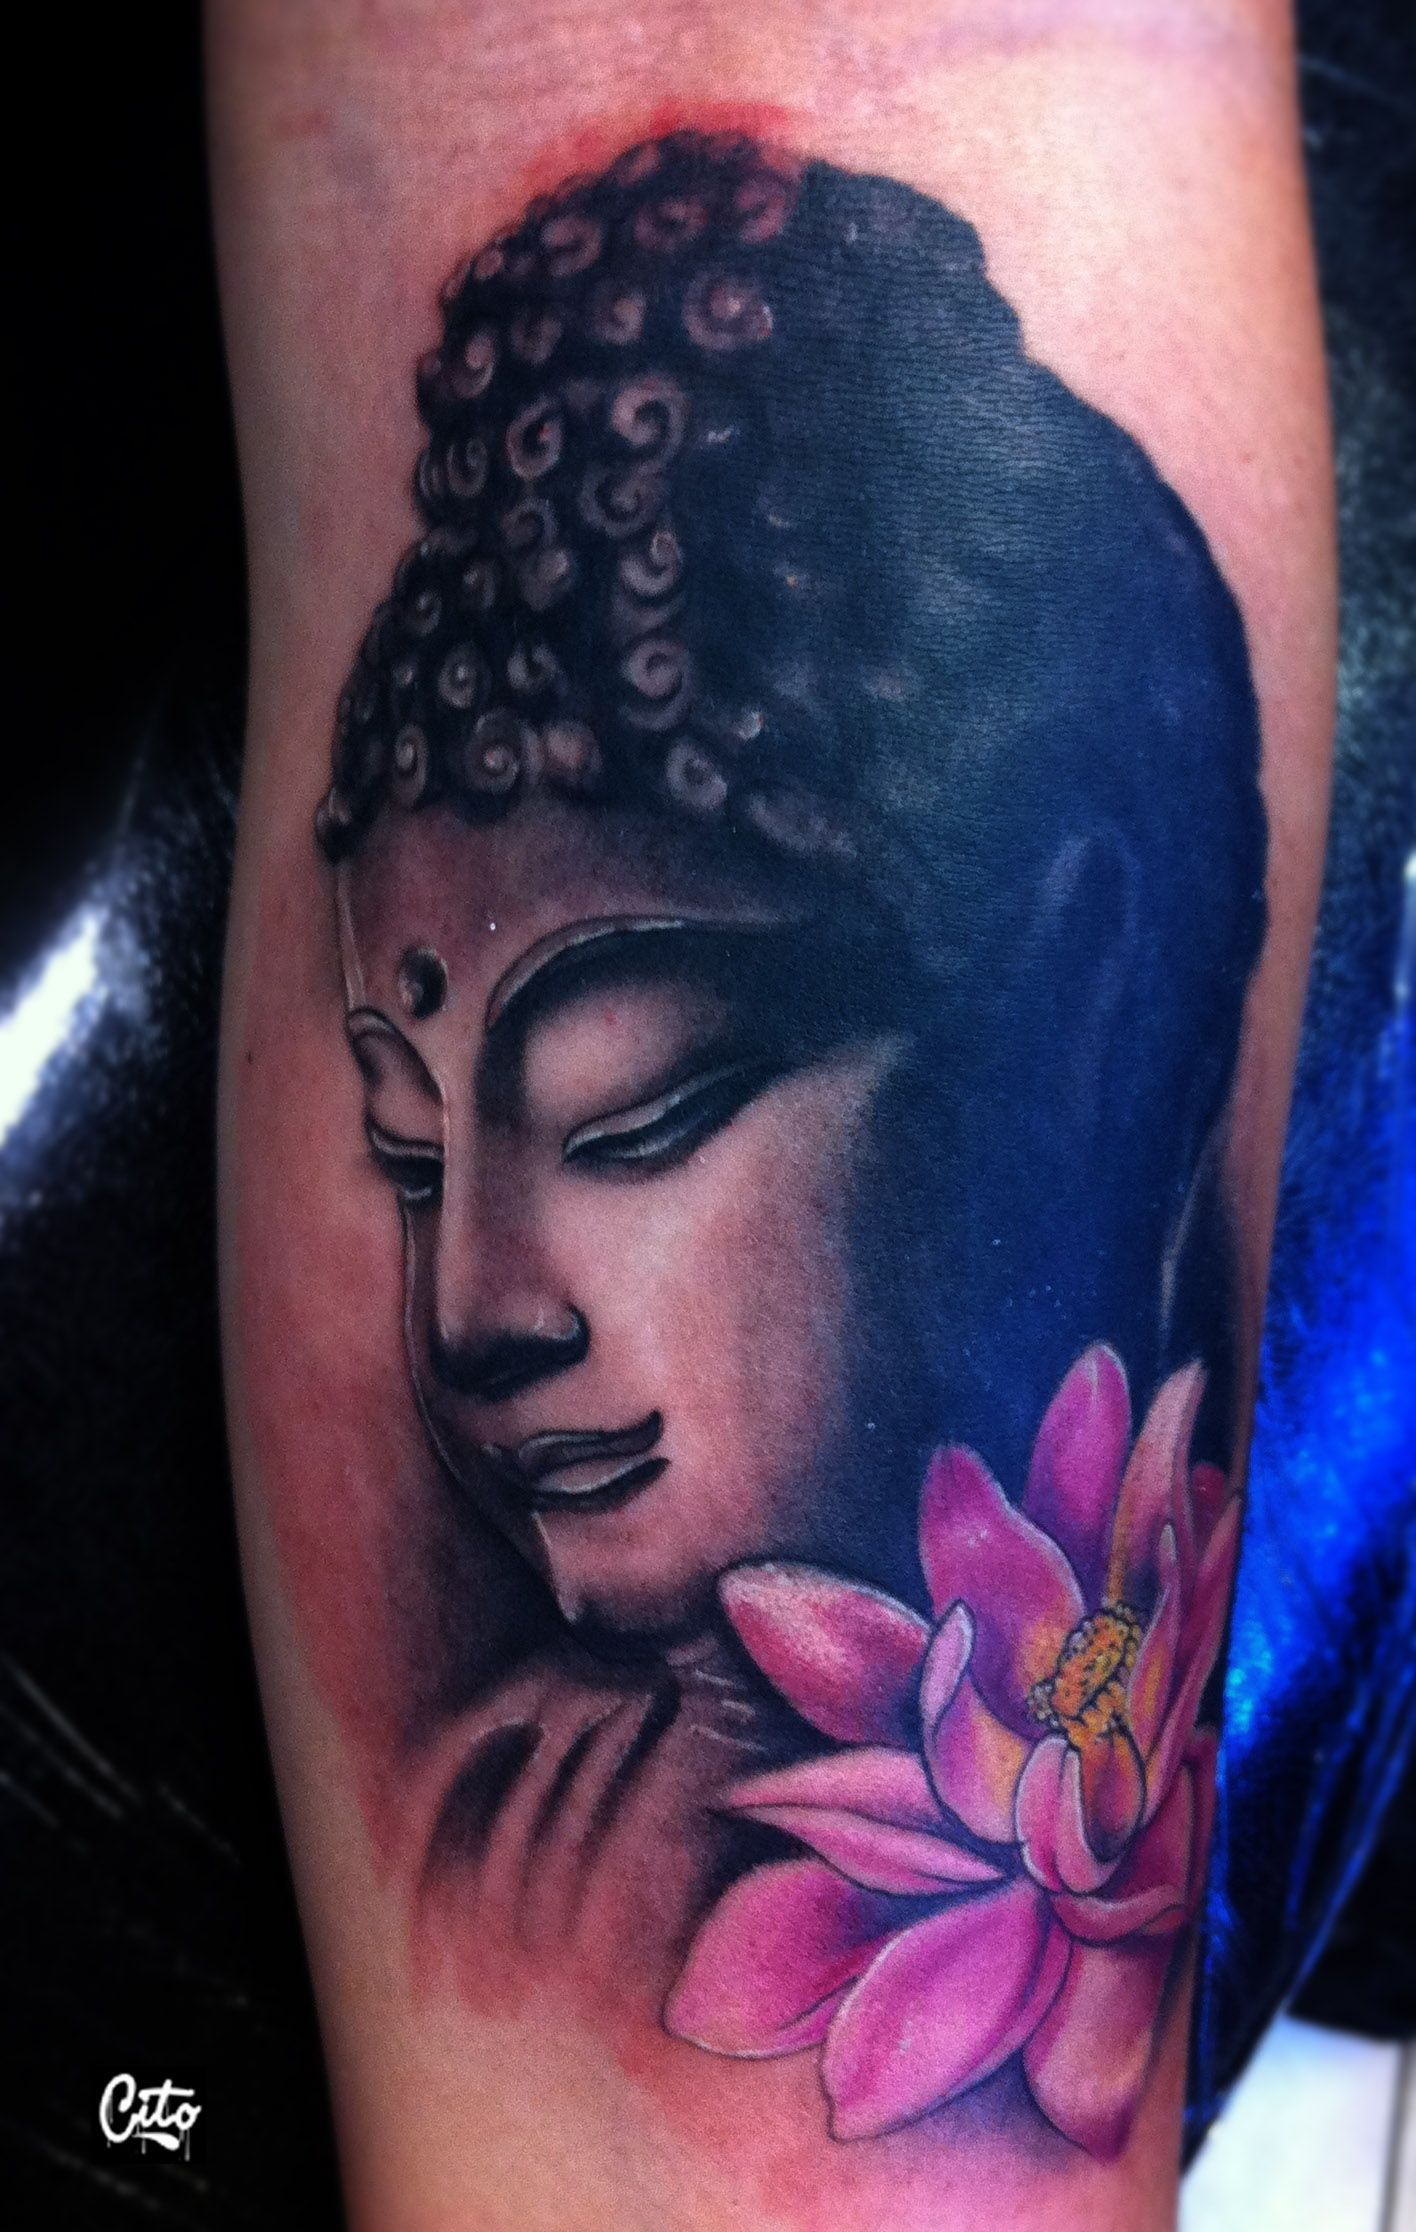 Buddah tattoo /In Buddhism the lotus flower symbolizes faithfulness.  Lotuses are symbols of purity, enlightenment and 'spontaneous' generation and hence symbolize divine birth.